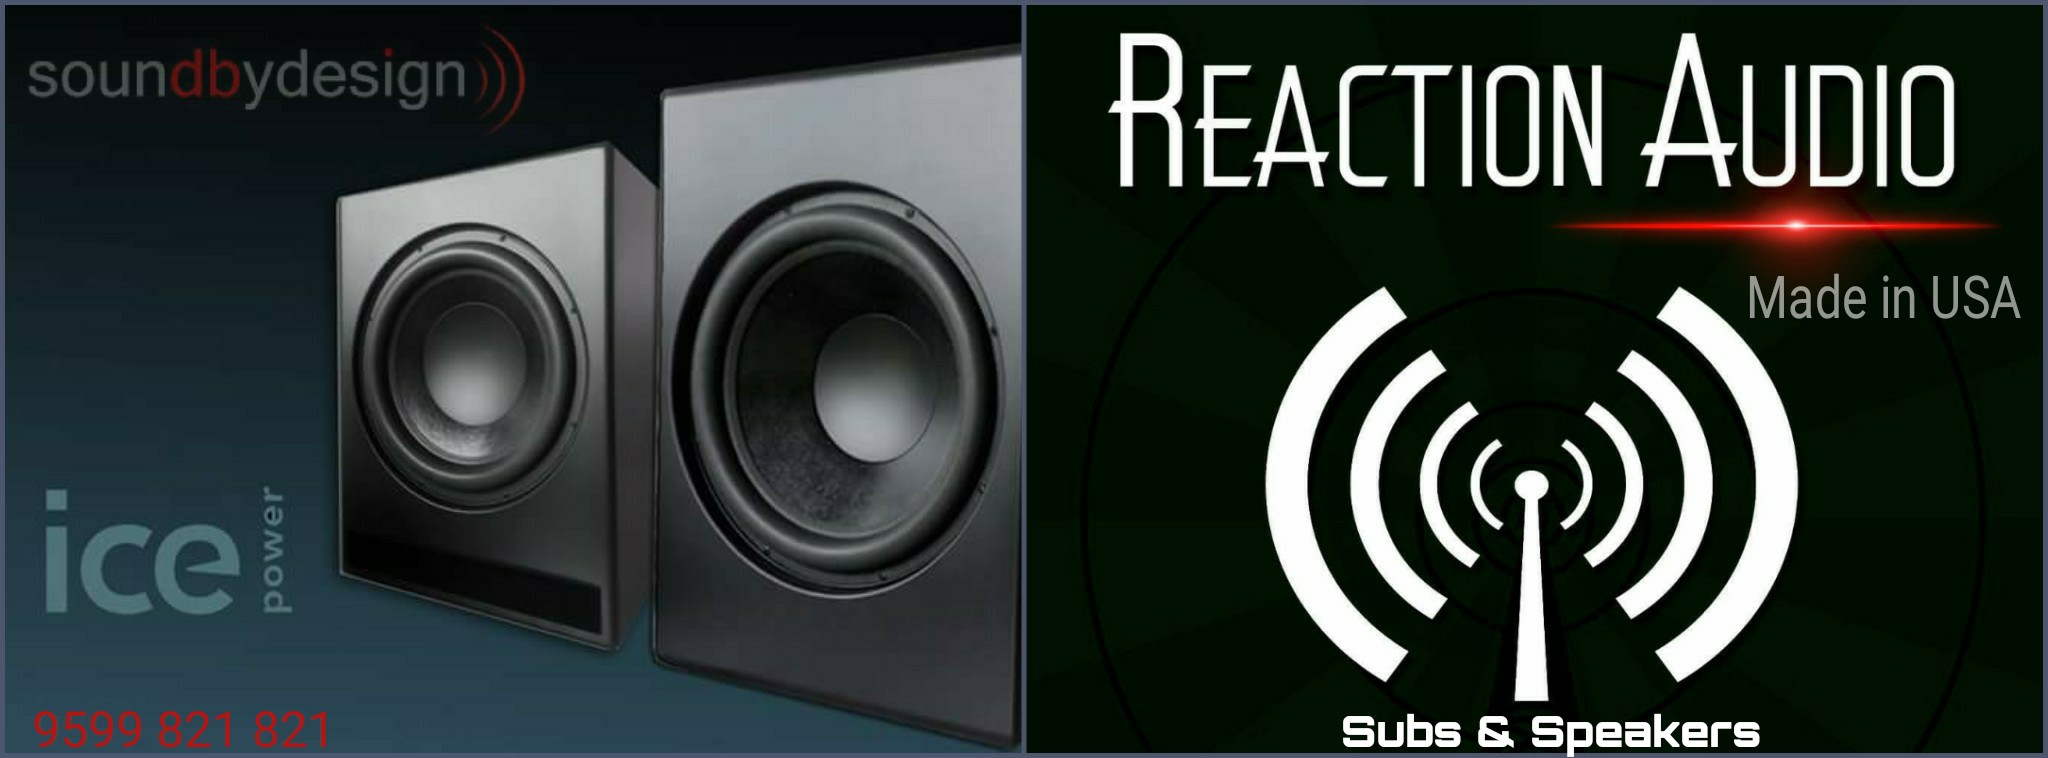 ReactionAudio